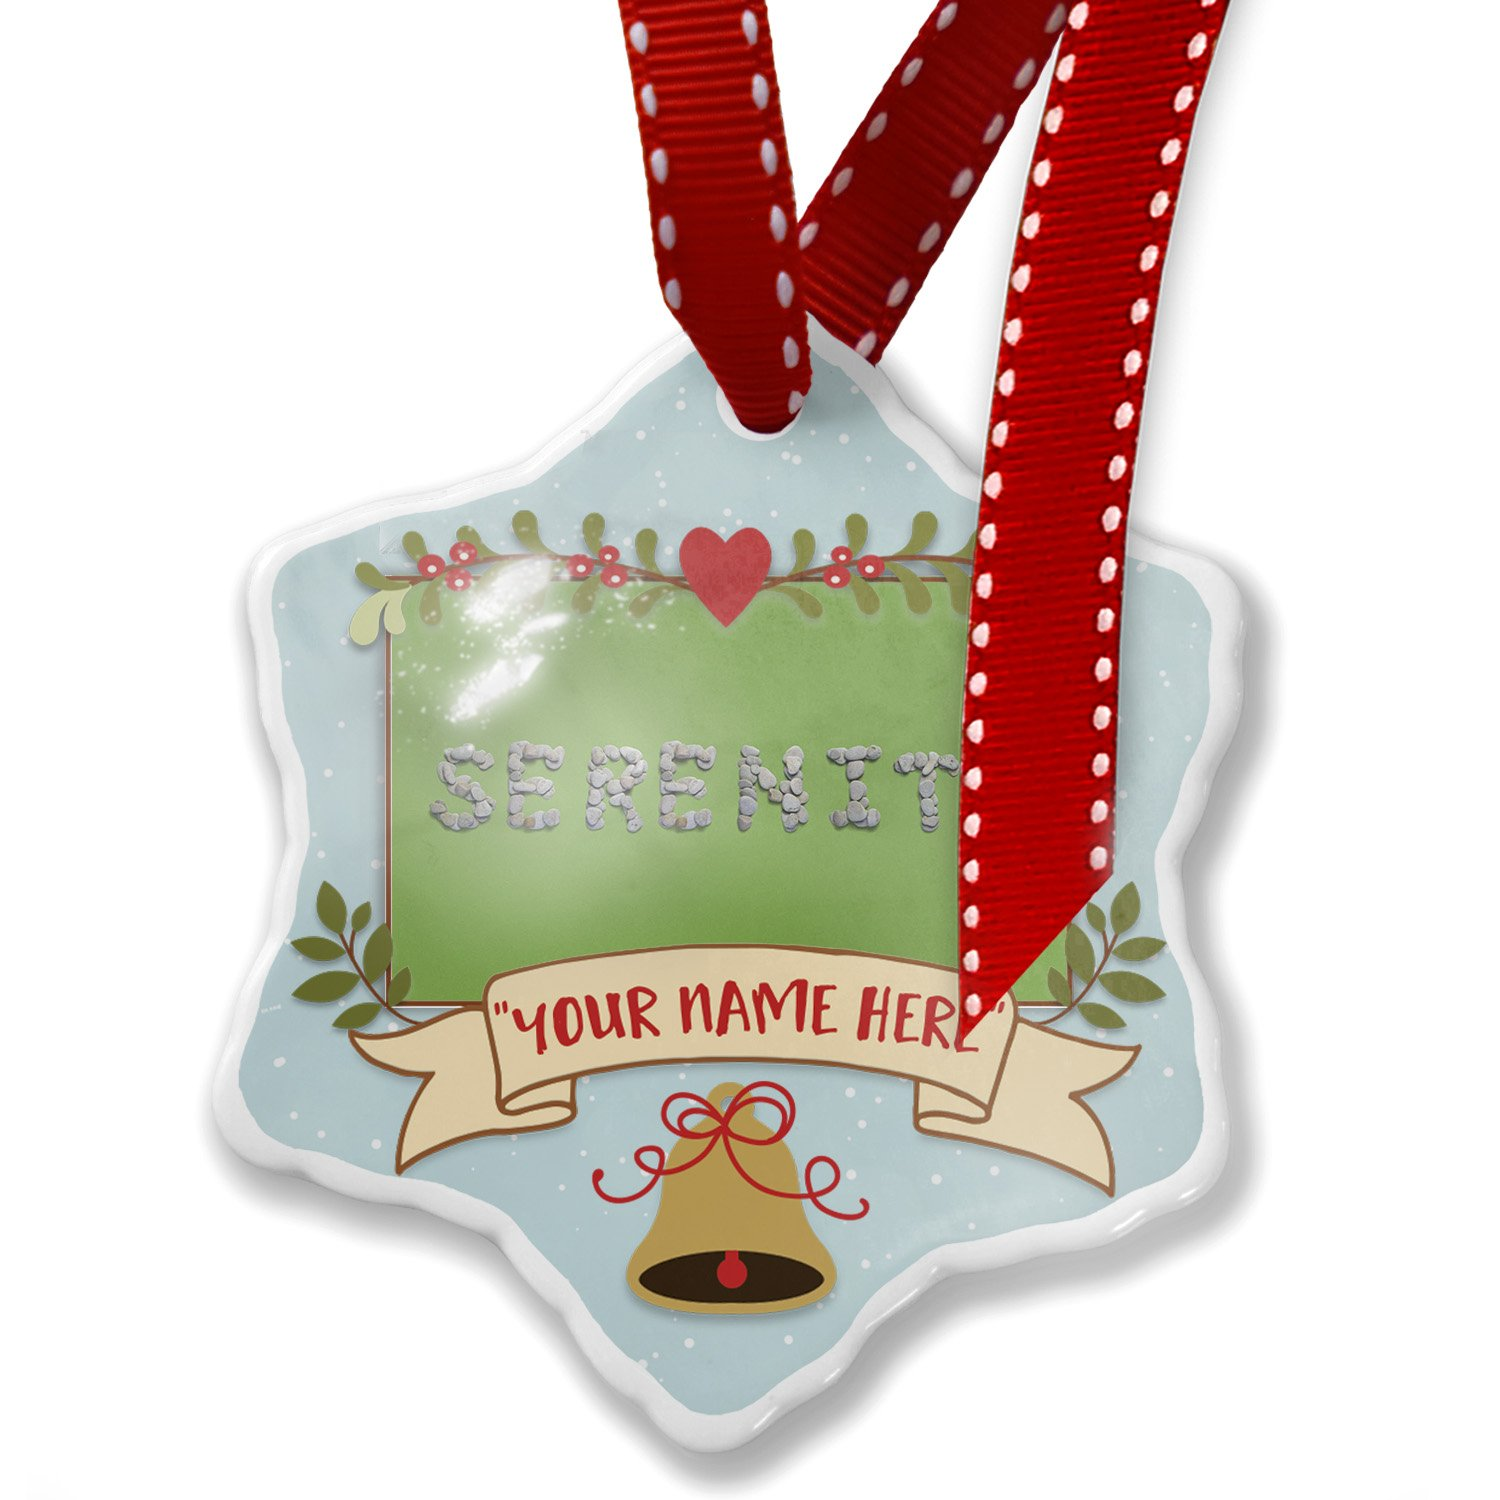 Add Your Own Custom Name, Serenity Spa Stones Rocks Christmas Ornament NEONBLOND